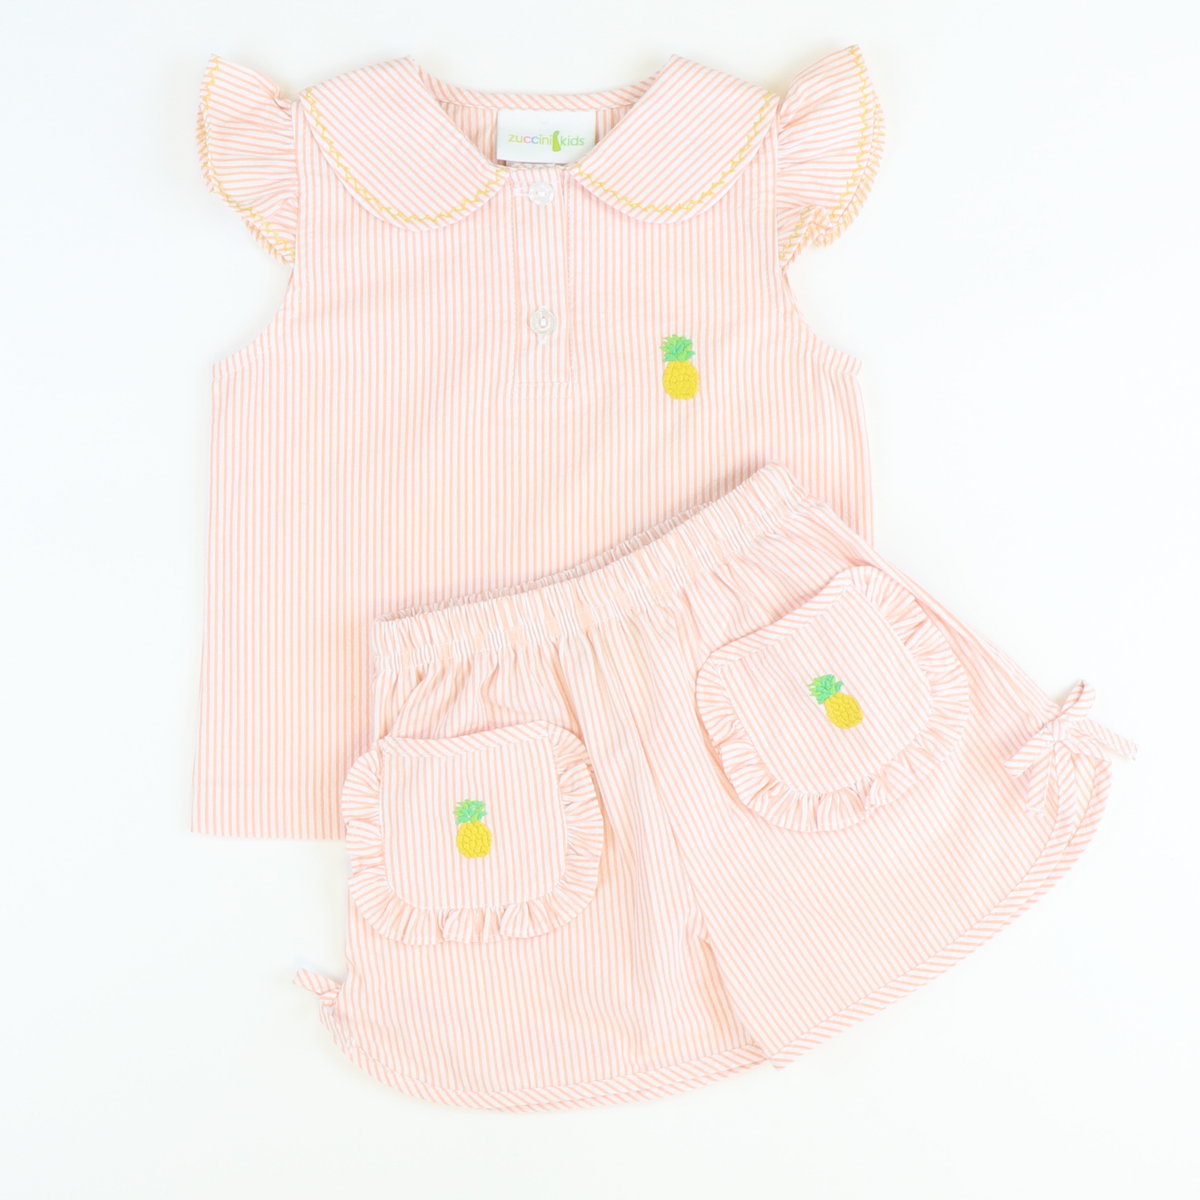 Embroidered Pineapple Top & Shorts Set